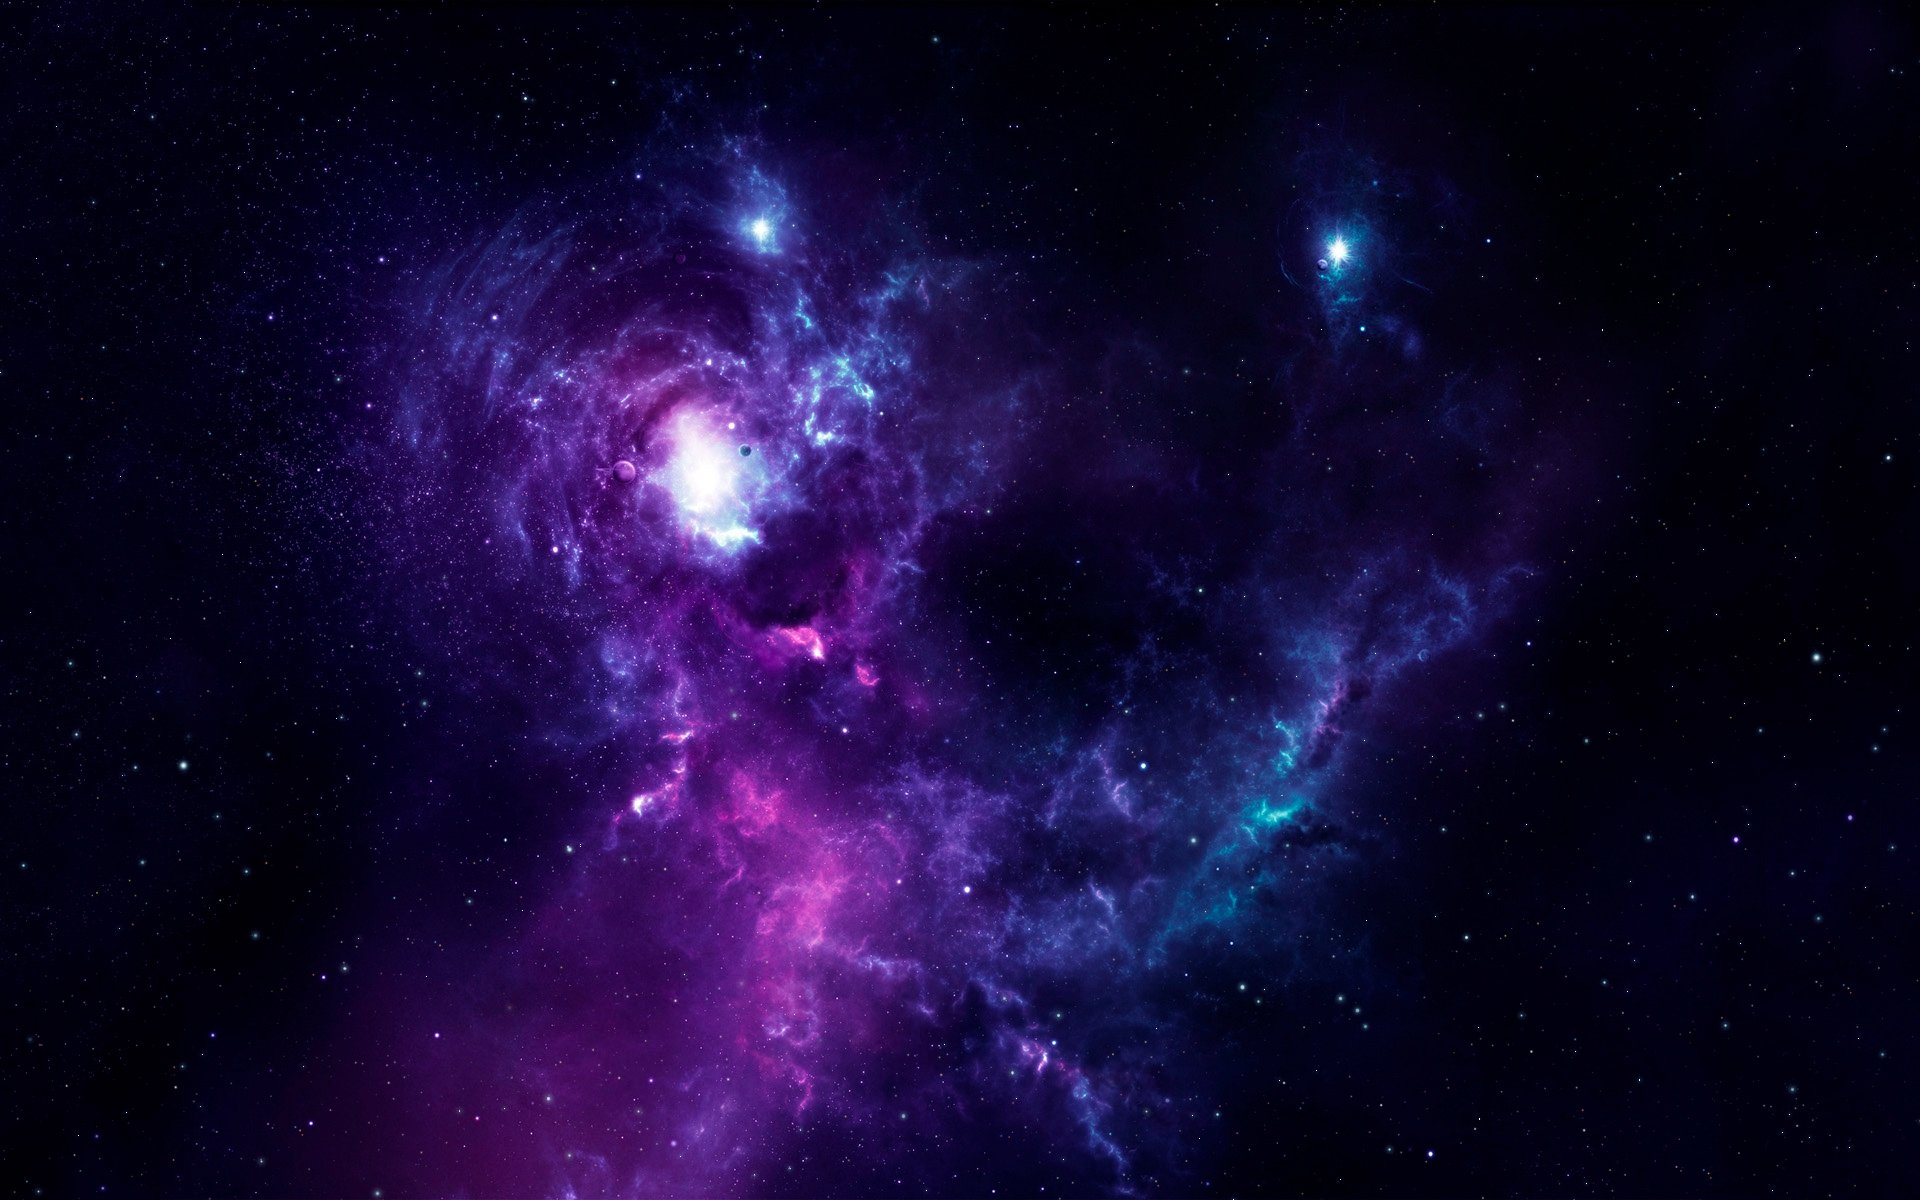 space awesome wallpaper freelancah nebula wallpapers room evera 1920x1200